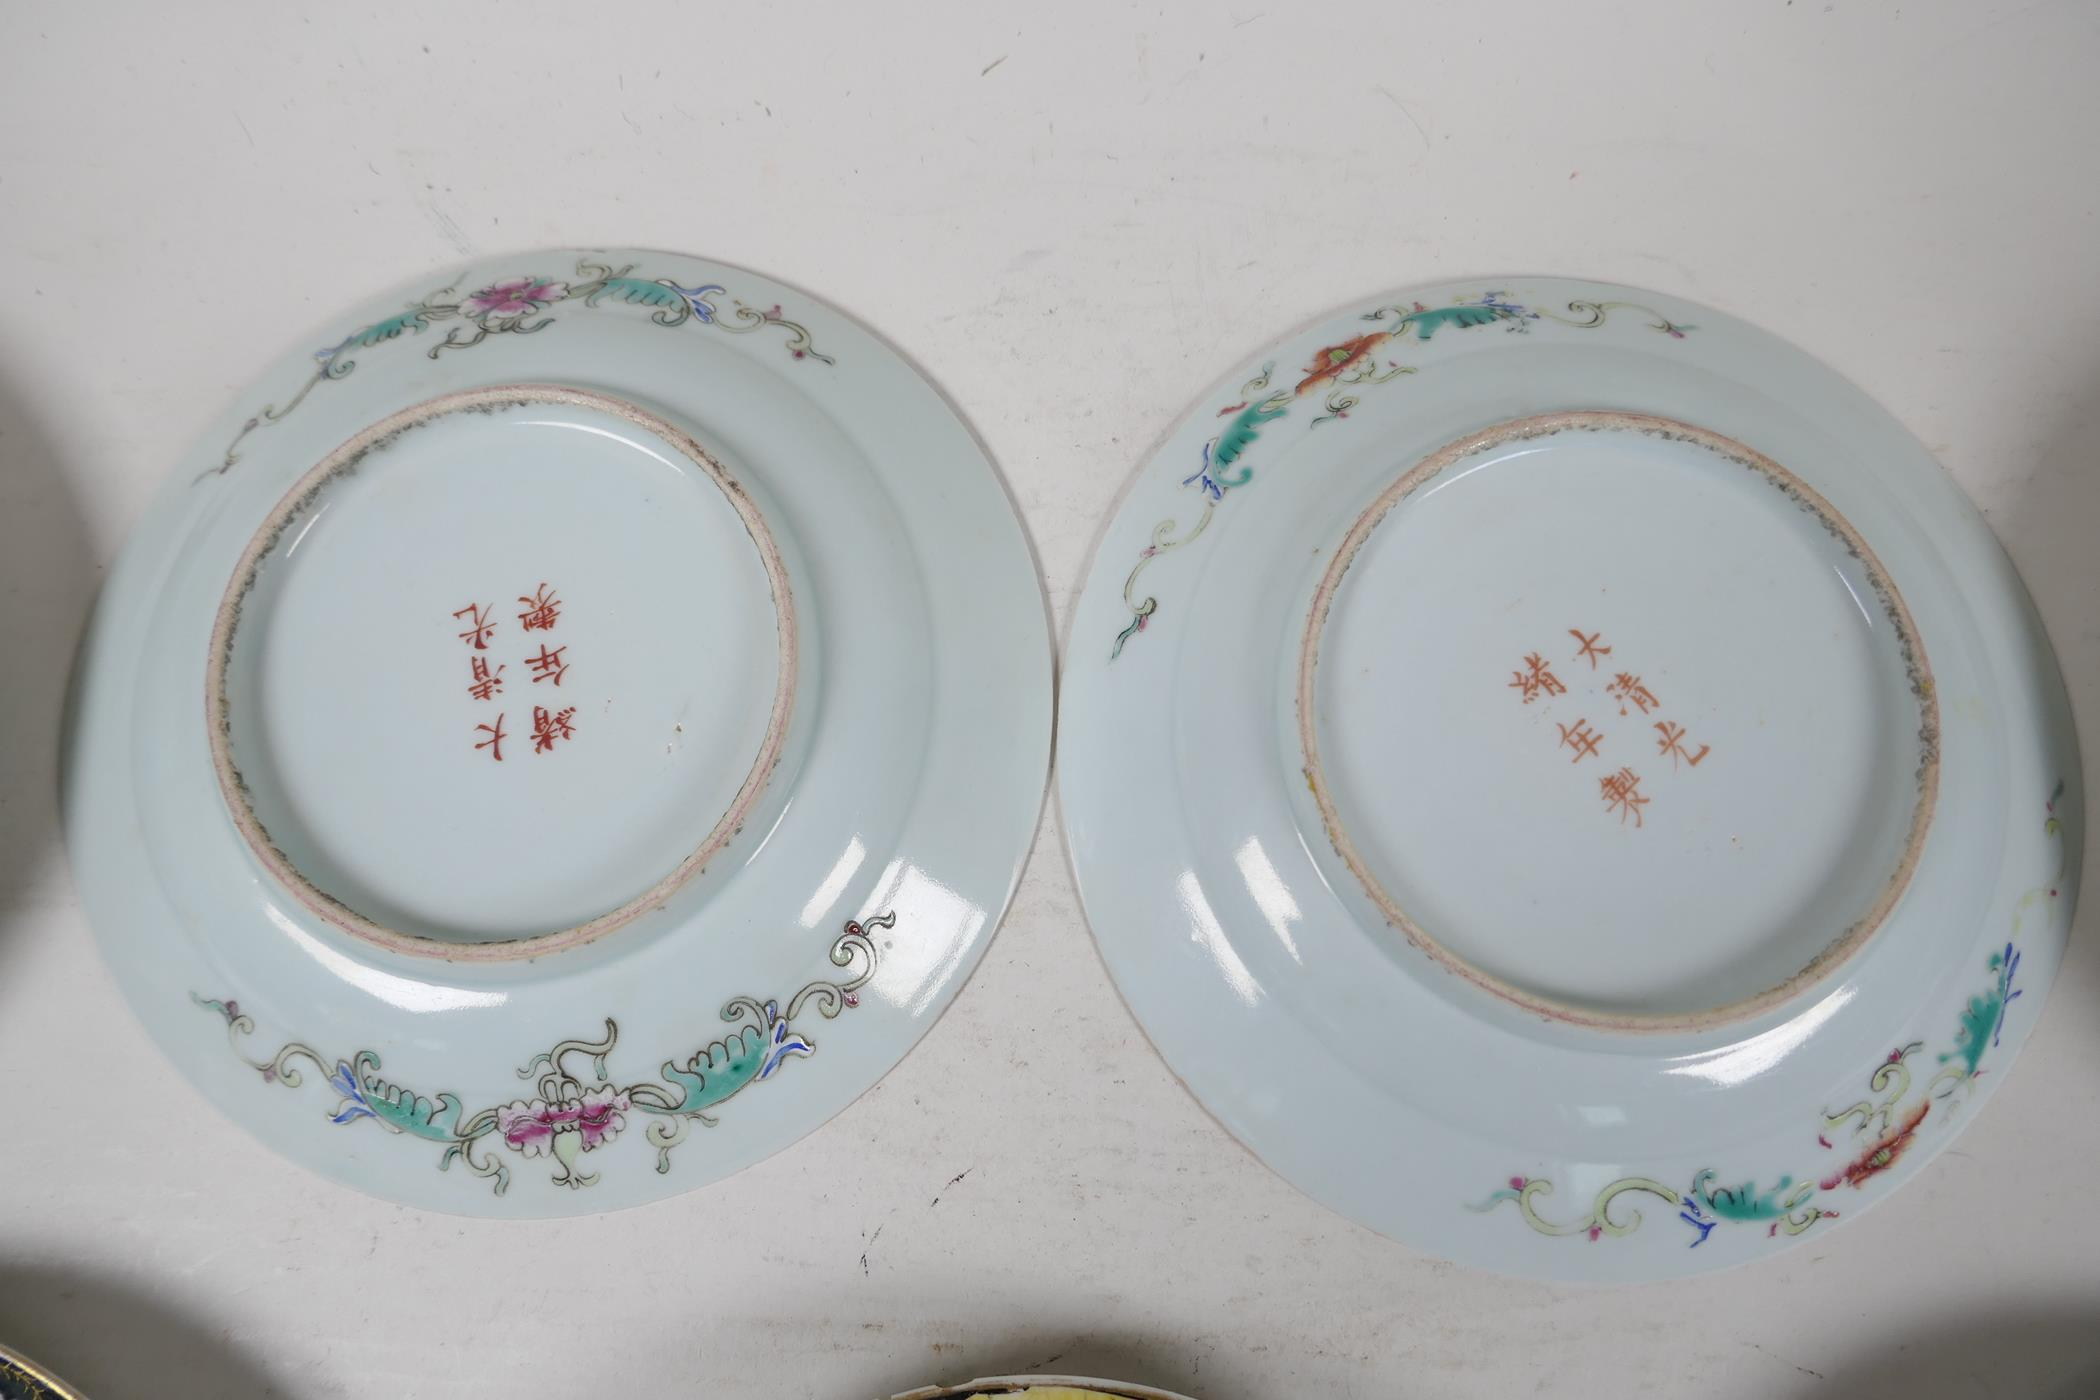 """Four late C19th Chinese porcelain plates decorated with symbols, on a yellow ground, 7"""" diameter, - Image 4 of 7"""